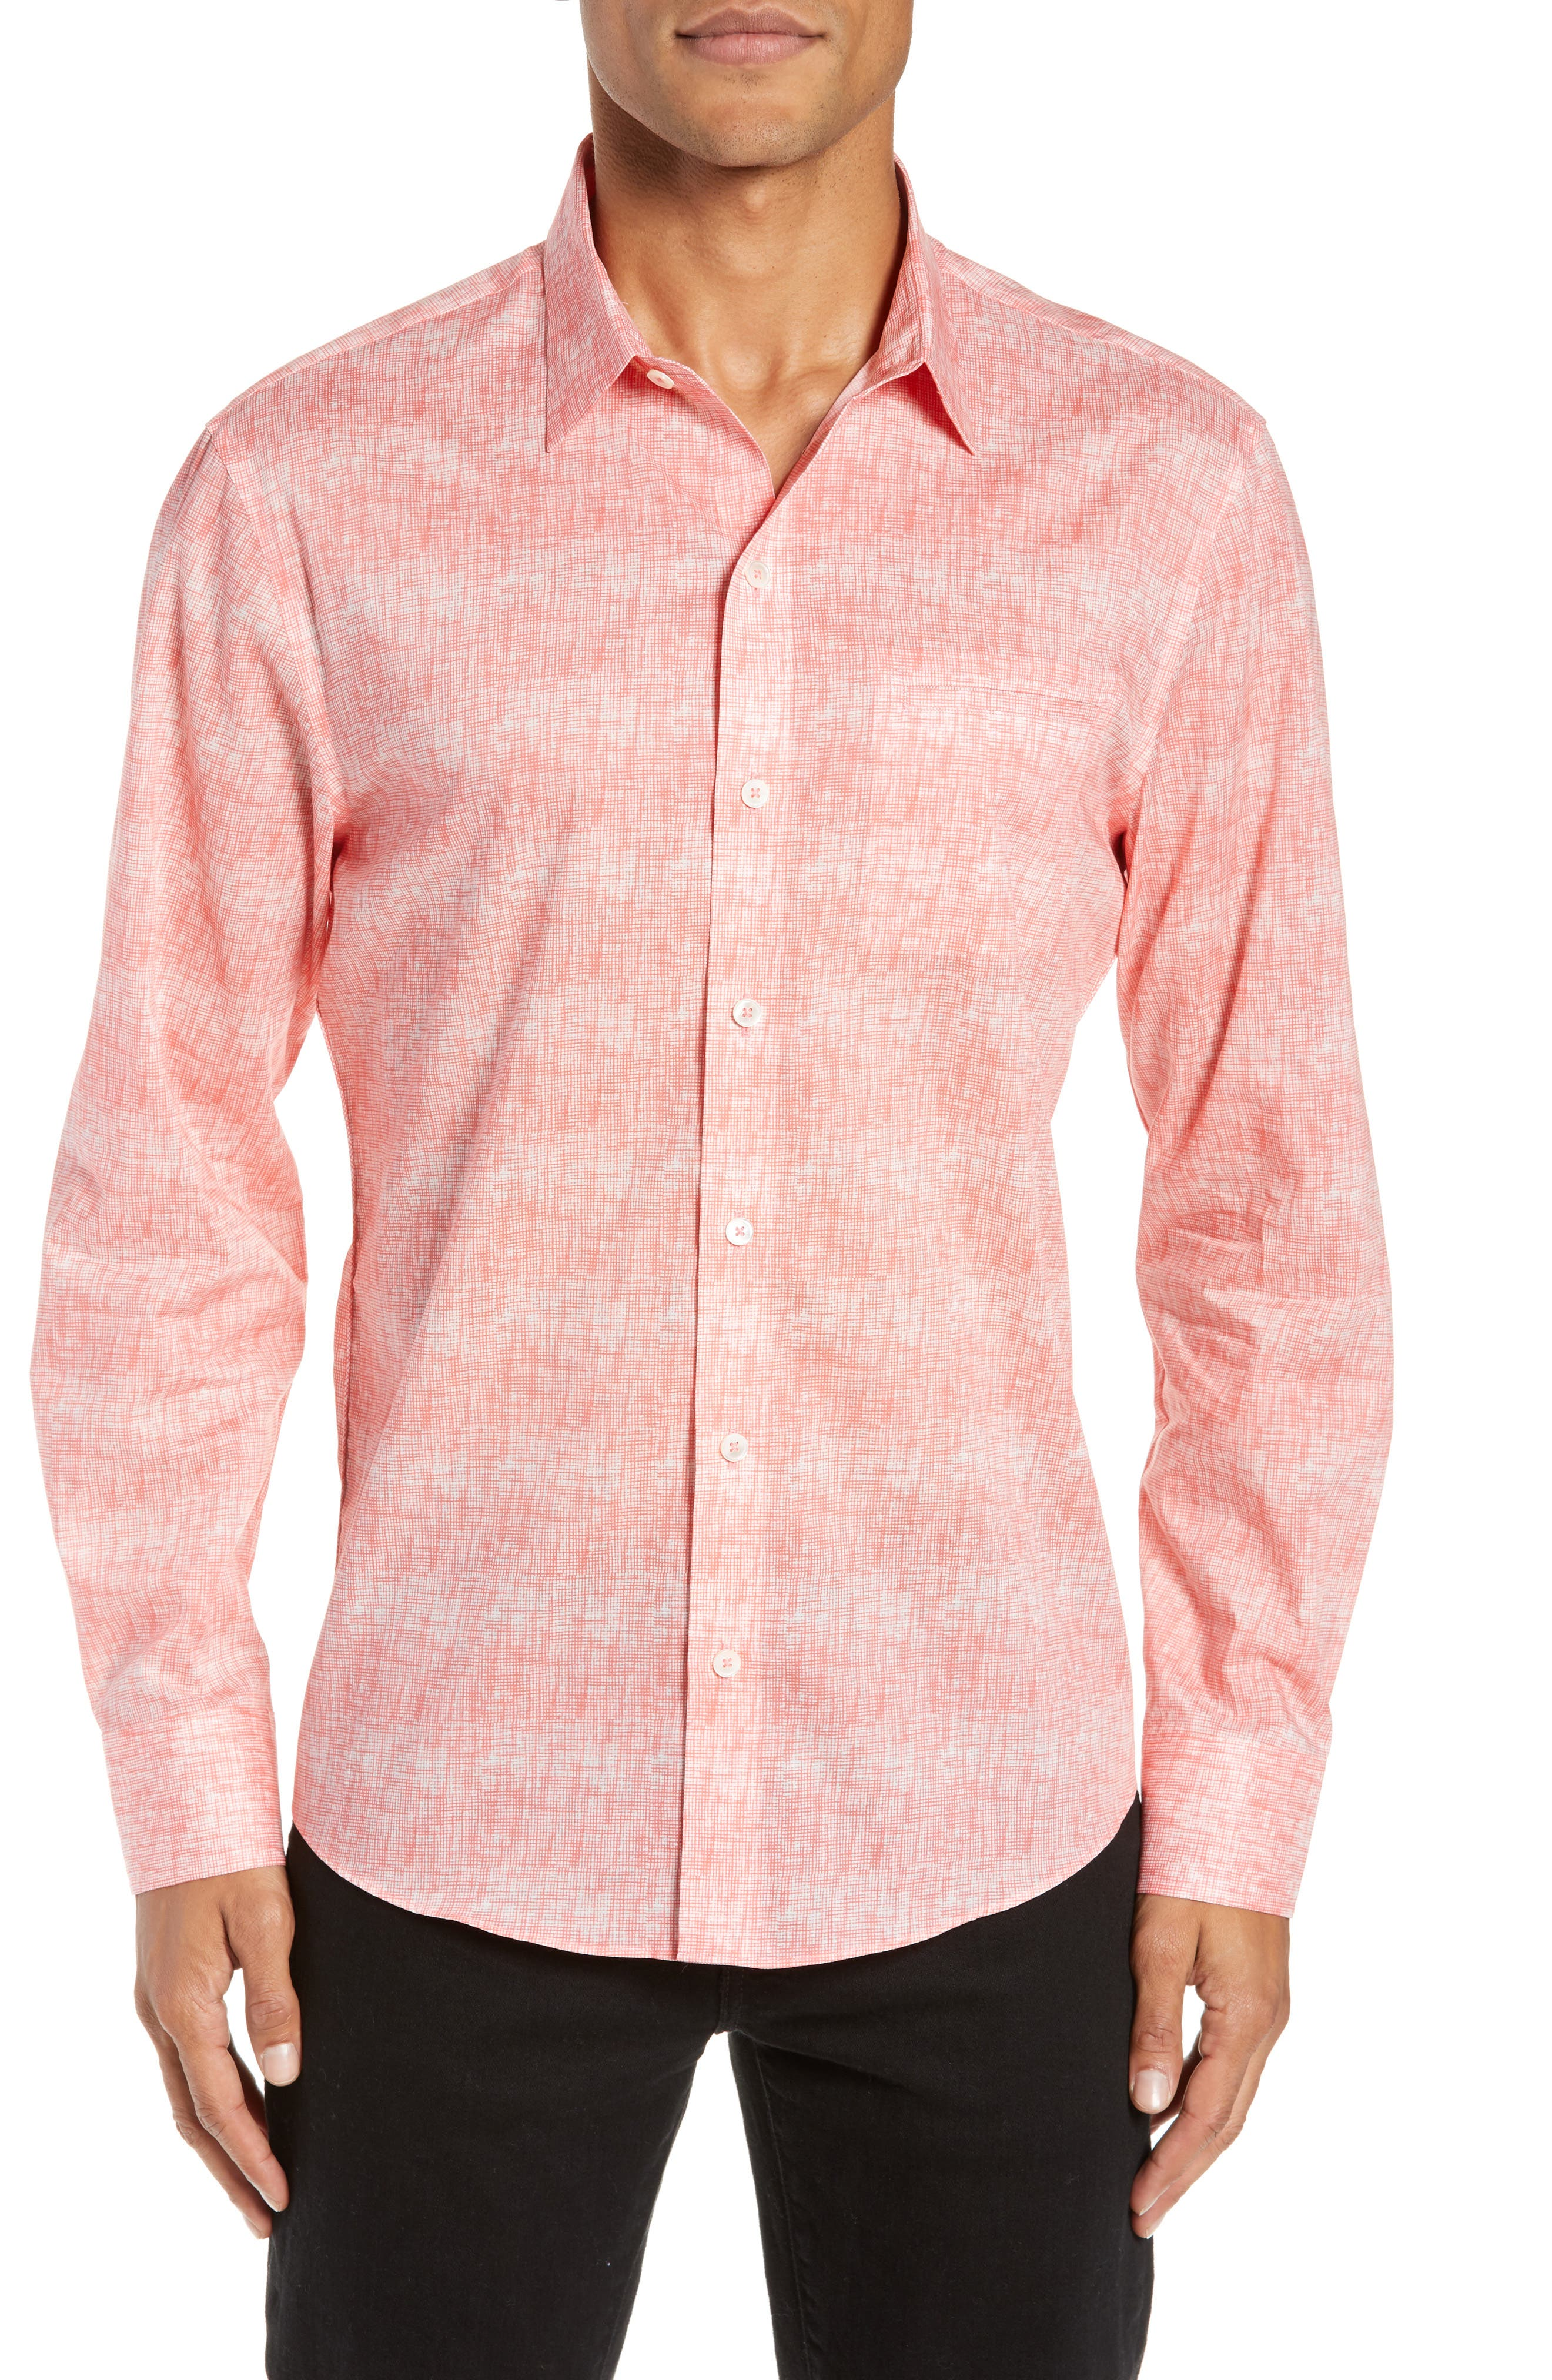 Griffin Regular Fit Sport Shirt,                             Main thumbnail 1, color,                             PINK